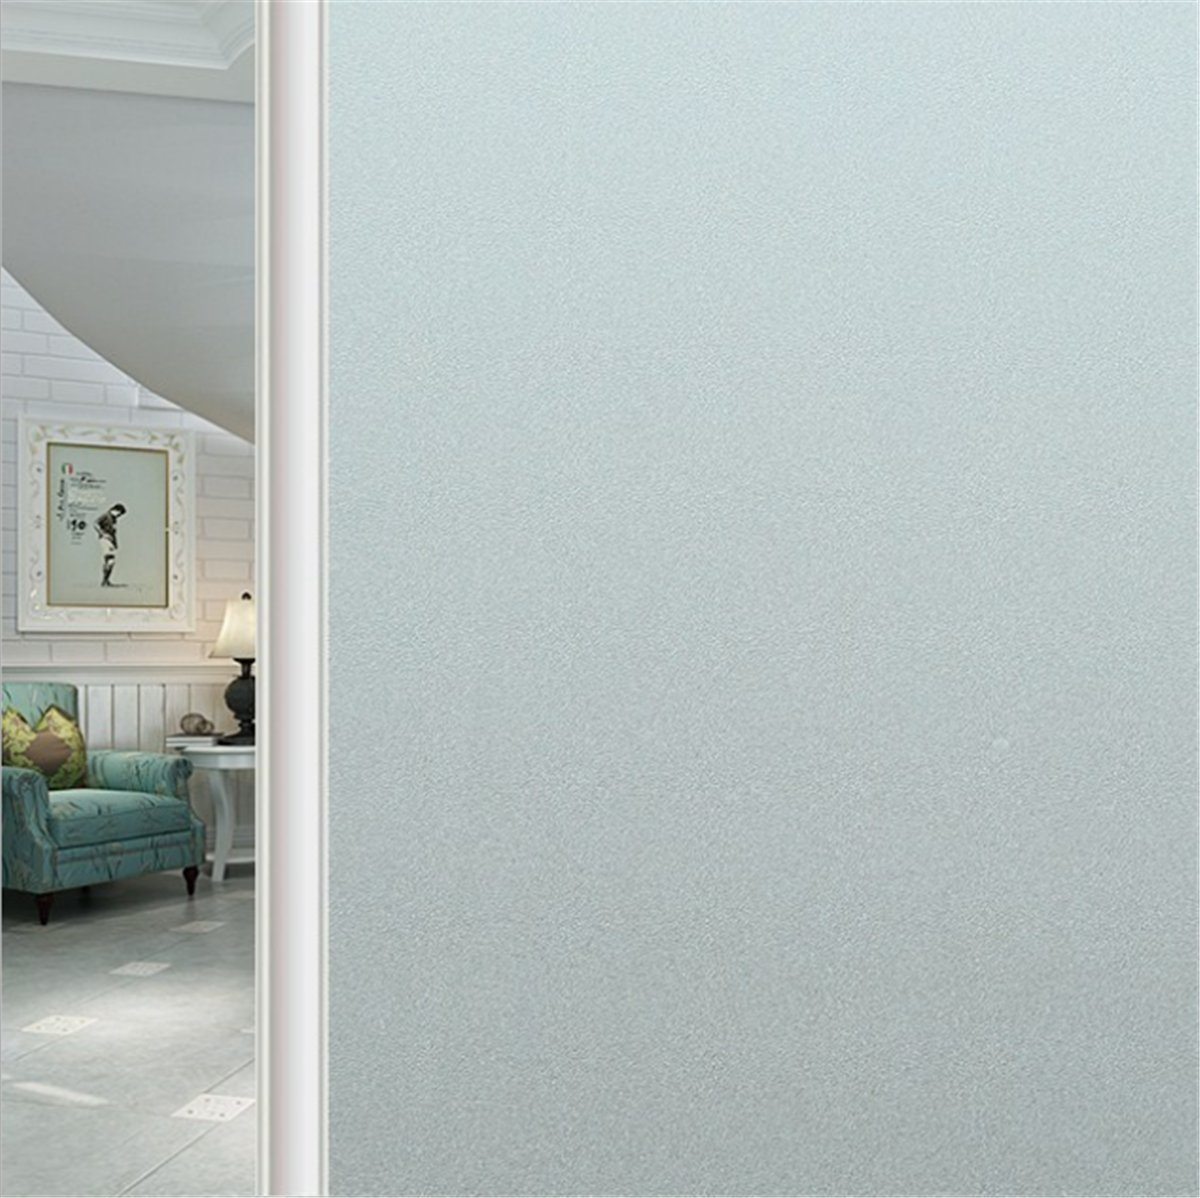 Geo Window Films PVC-FR39078 Frost 39 x 78 Non-Adhesive Window Film